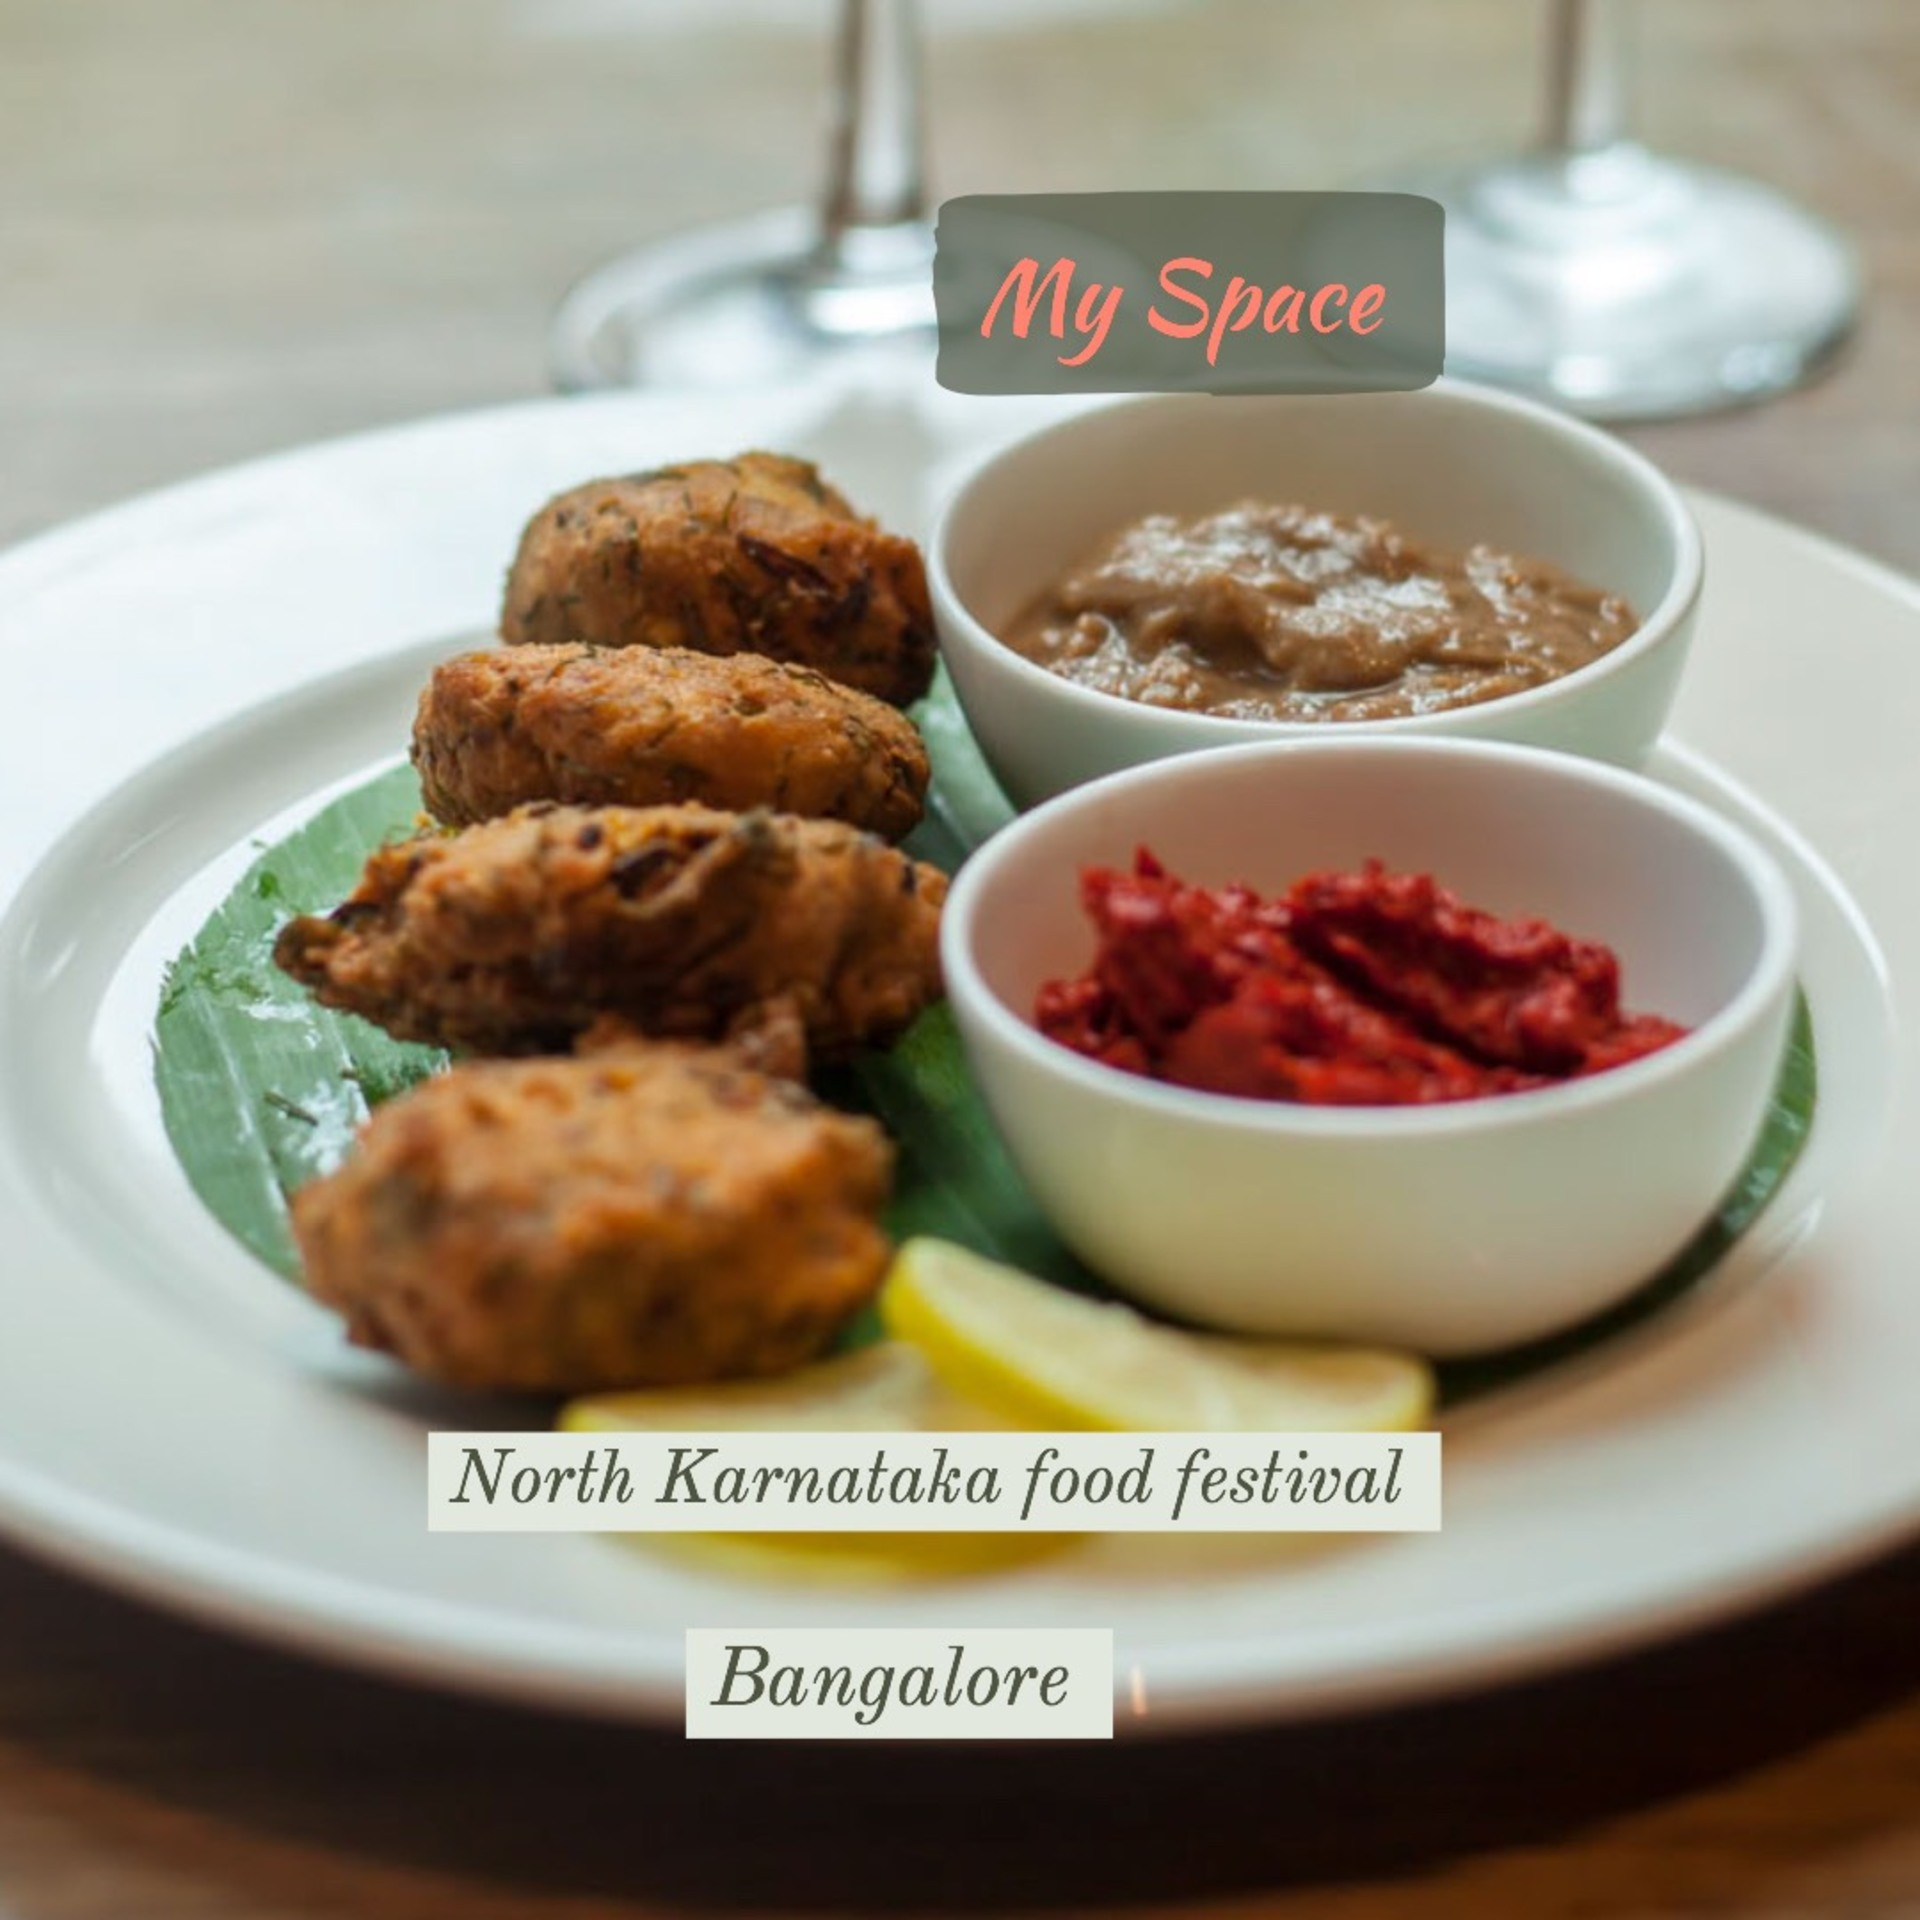 North karnataka food festival - My space  image